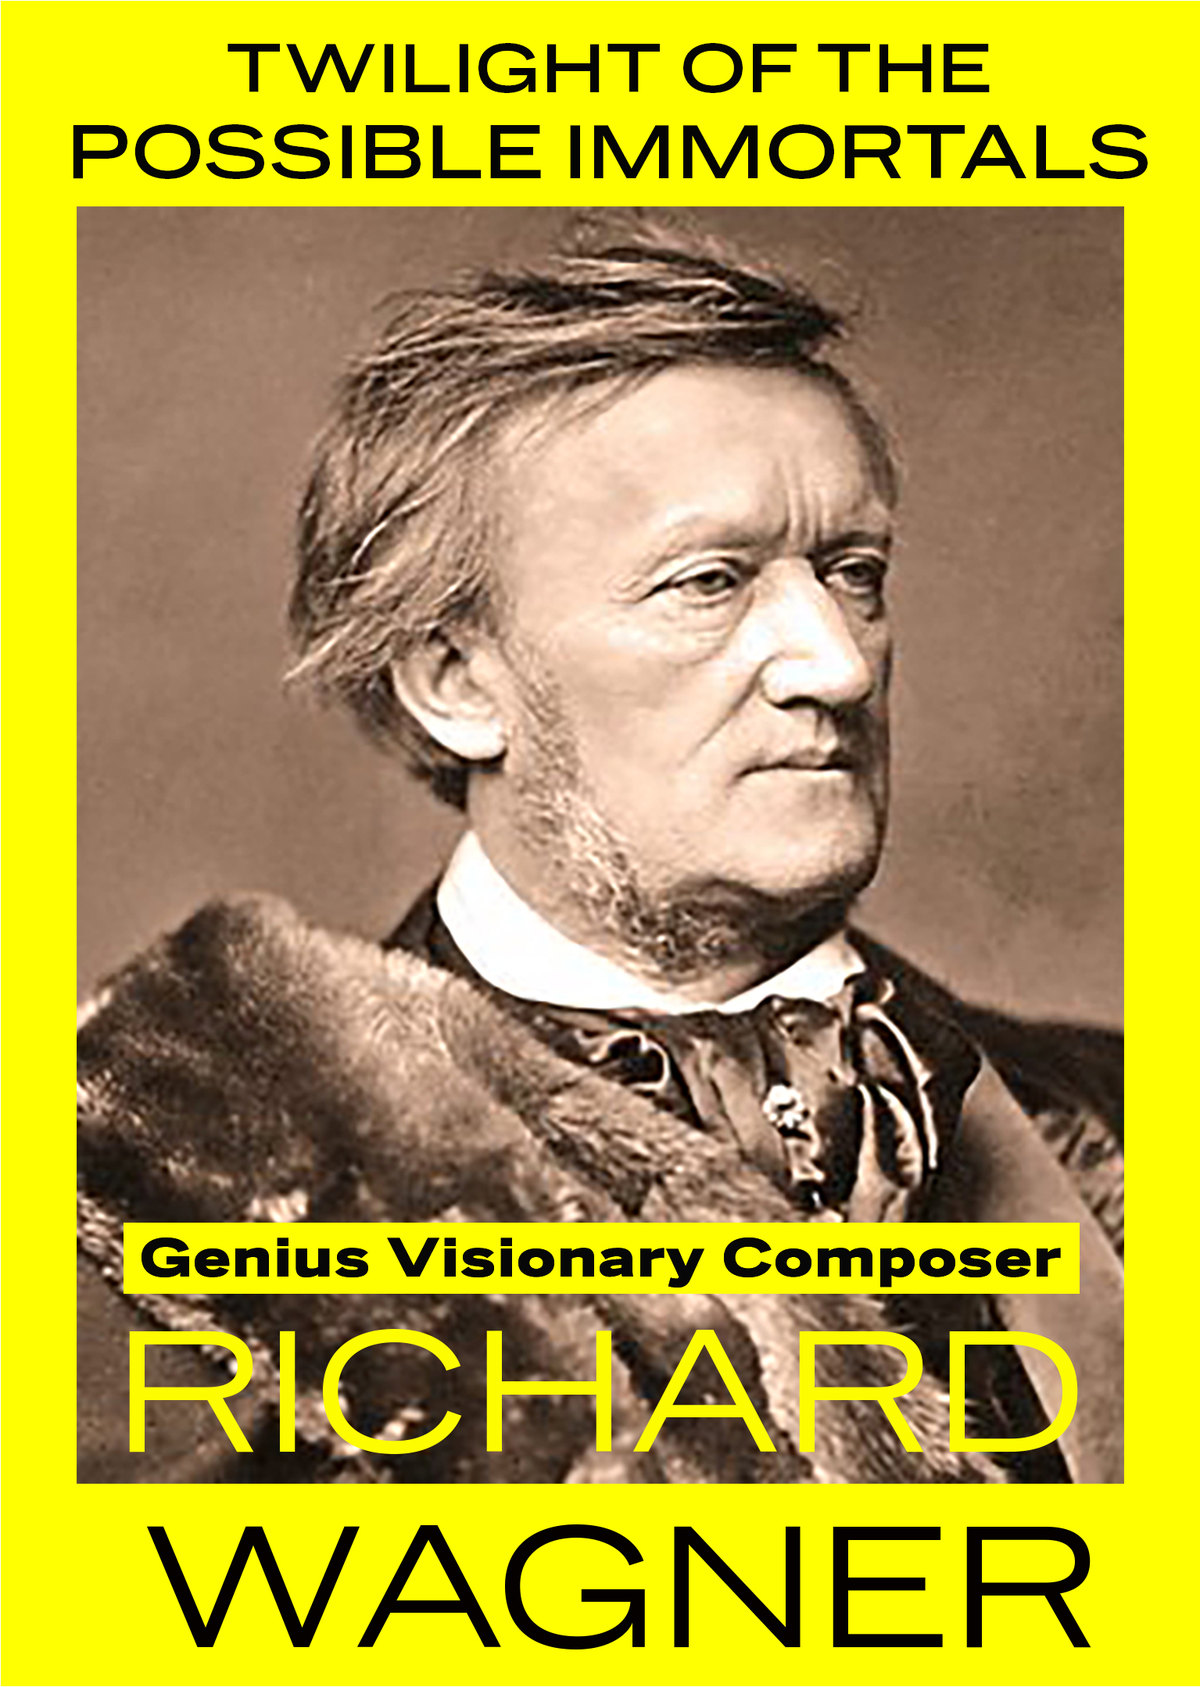 K5060 - Twilight of the Possible Immortals - Genius Visionary Composer Richard Wagner